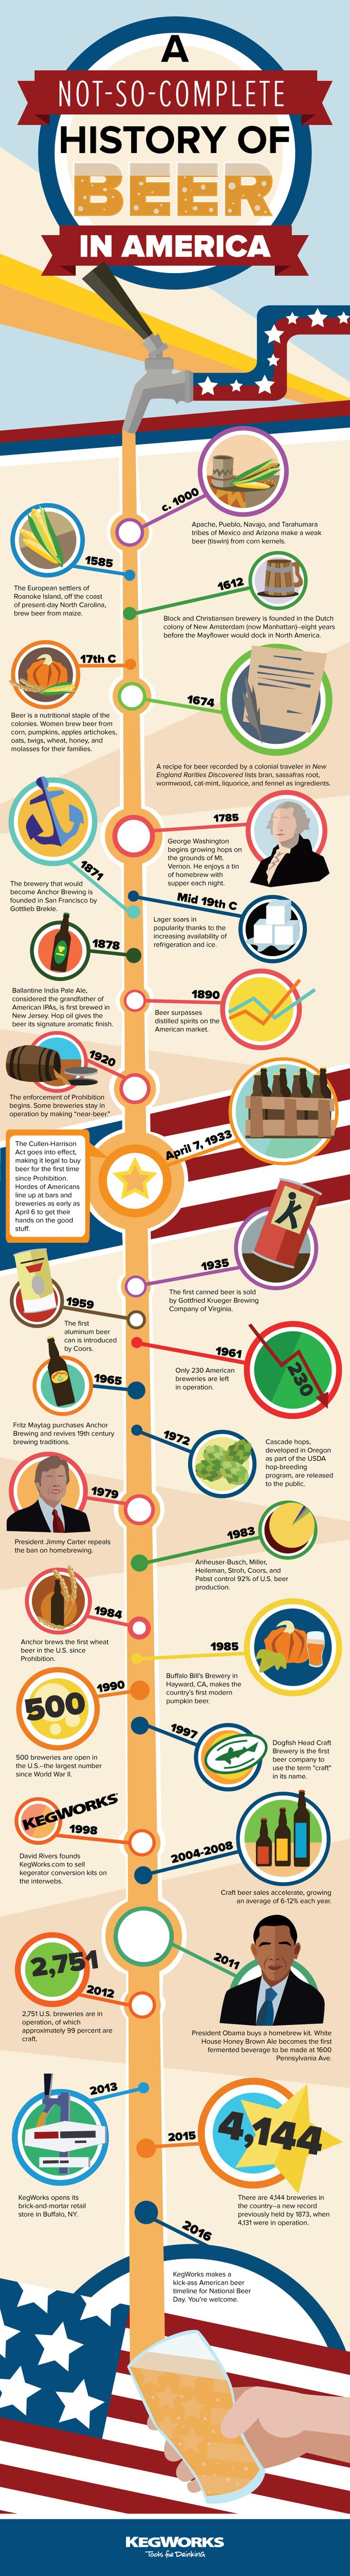 In honor of National Beer Day and the legal right to throw back a pint at our own, responsible discretion, we've put together a not-so-complete by at least mildly interesting timeline of the history of beer in America.